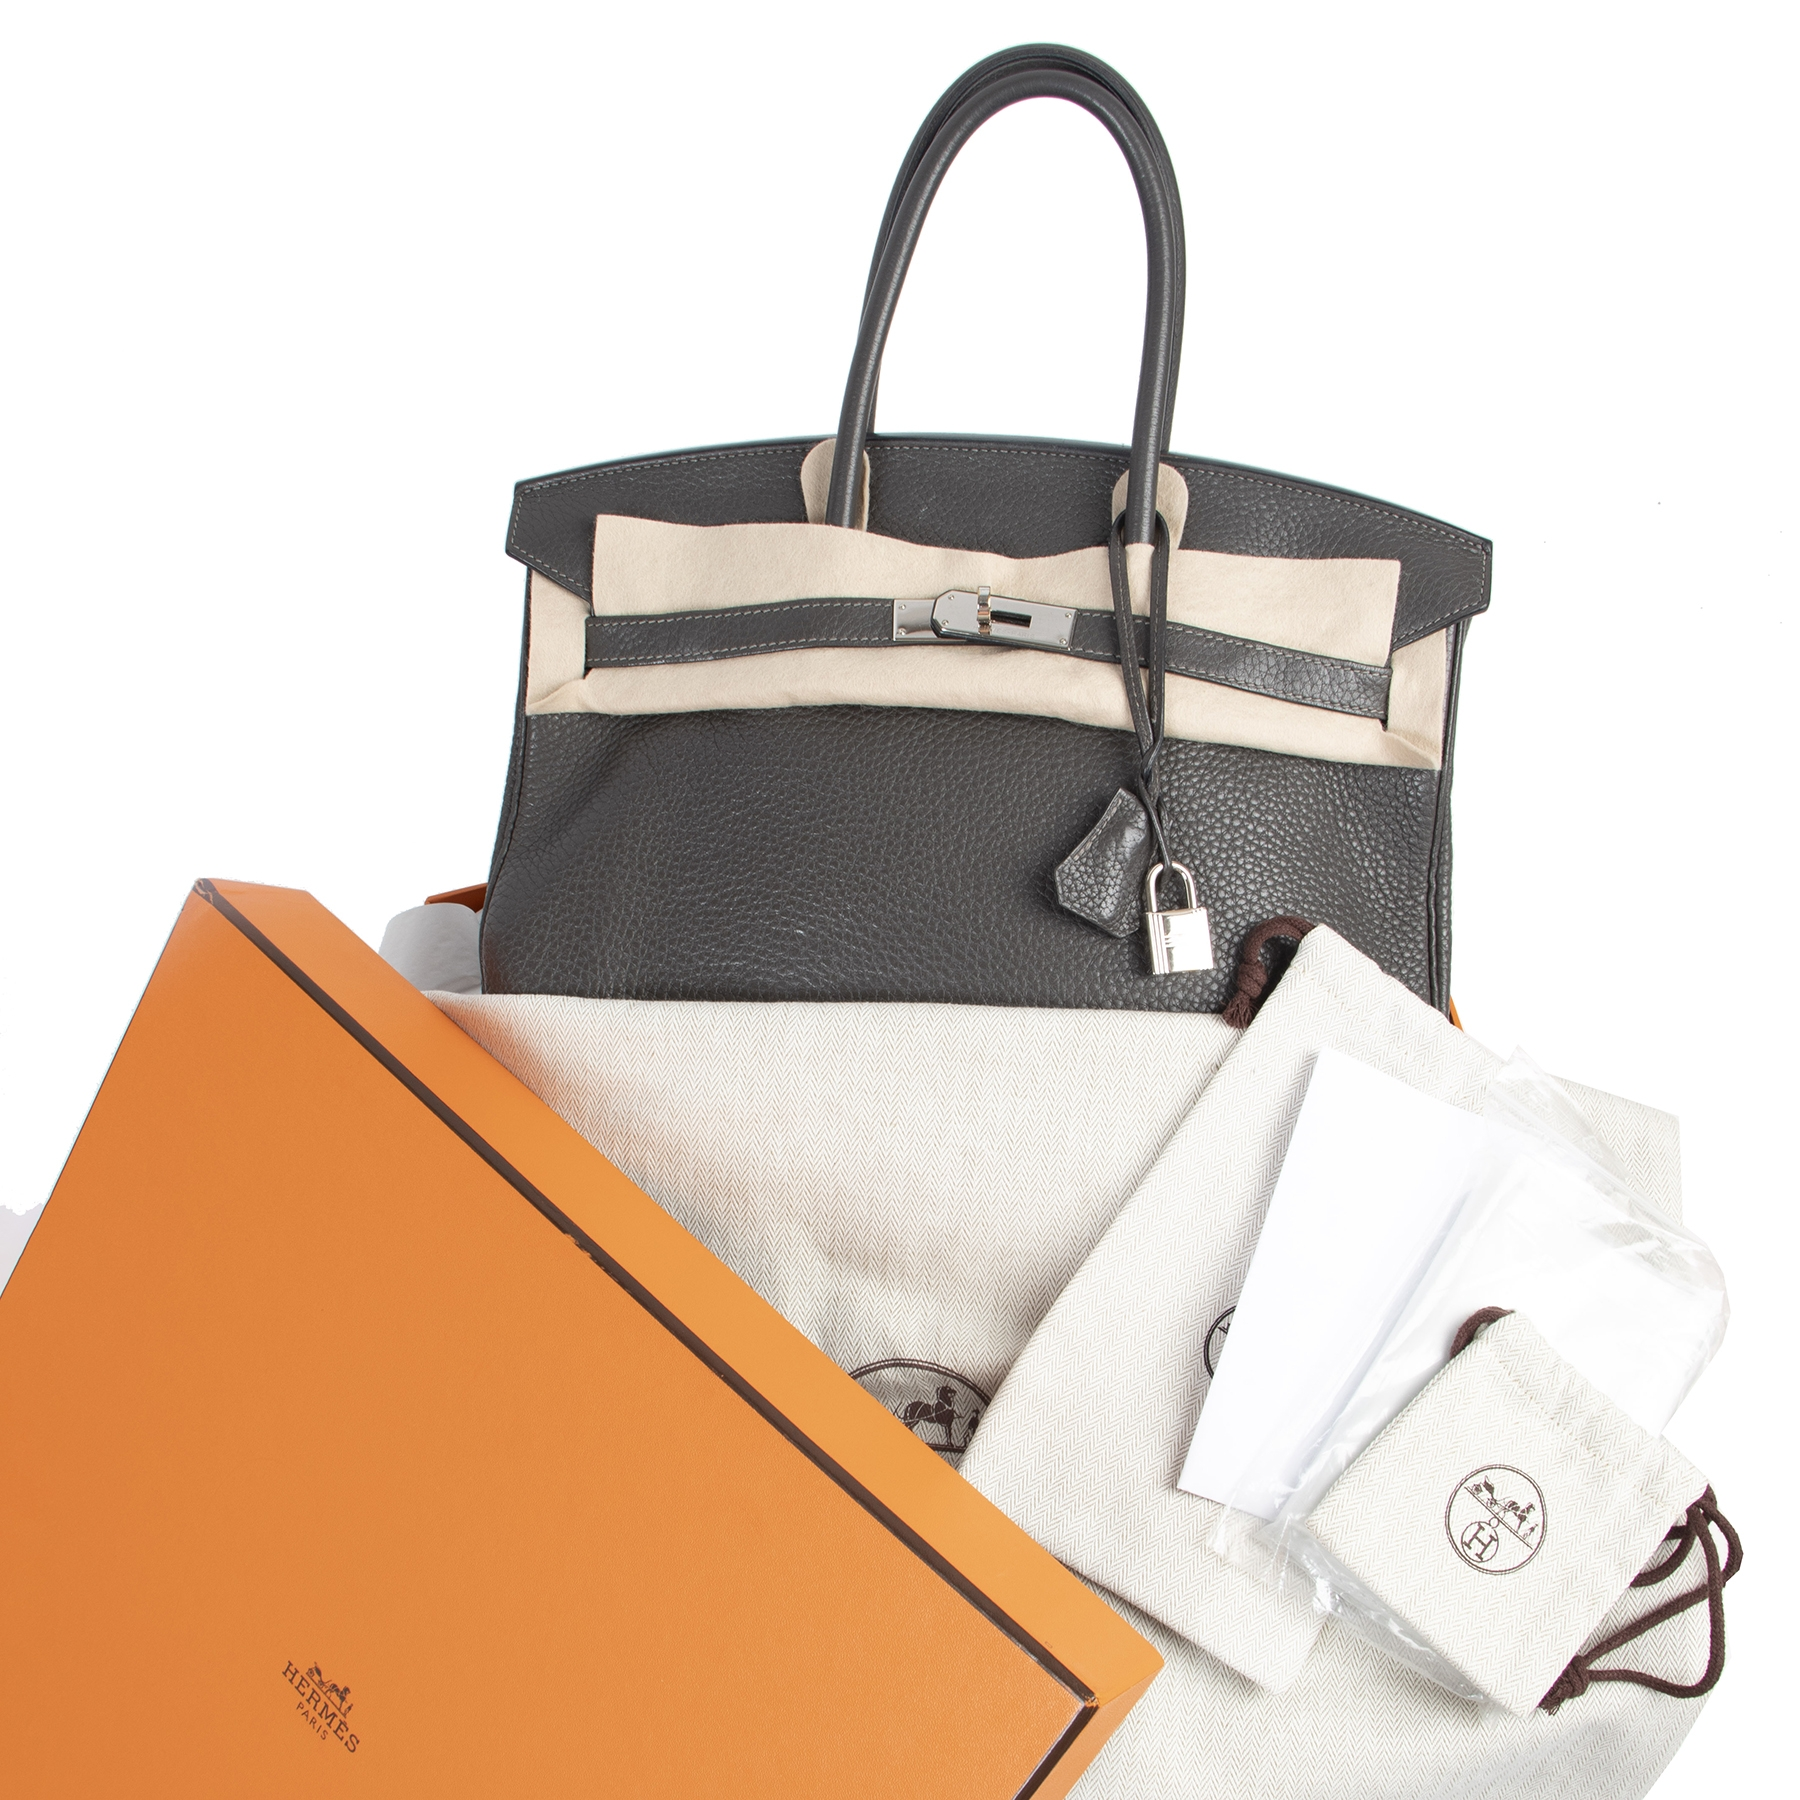 Hermès Birkin 35 Graphite Taurillon Clemence PHW for the best price available online